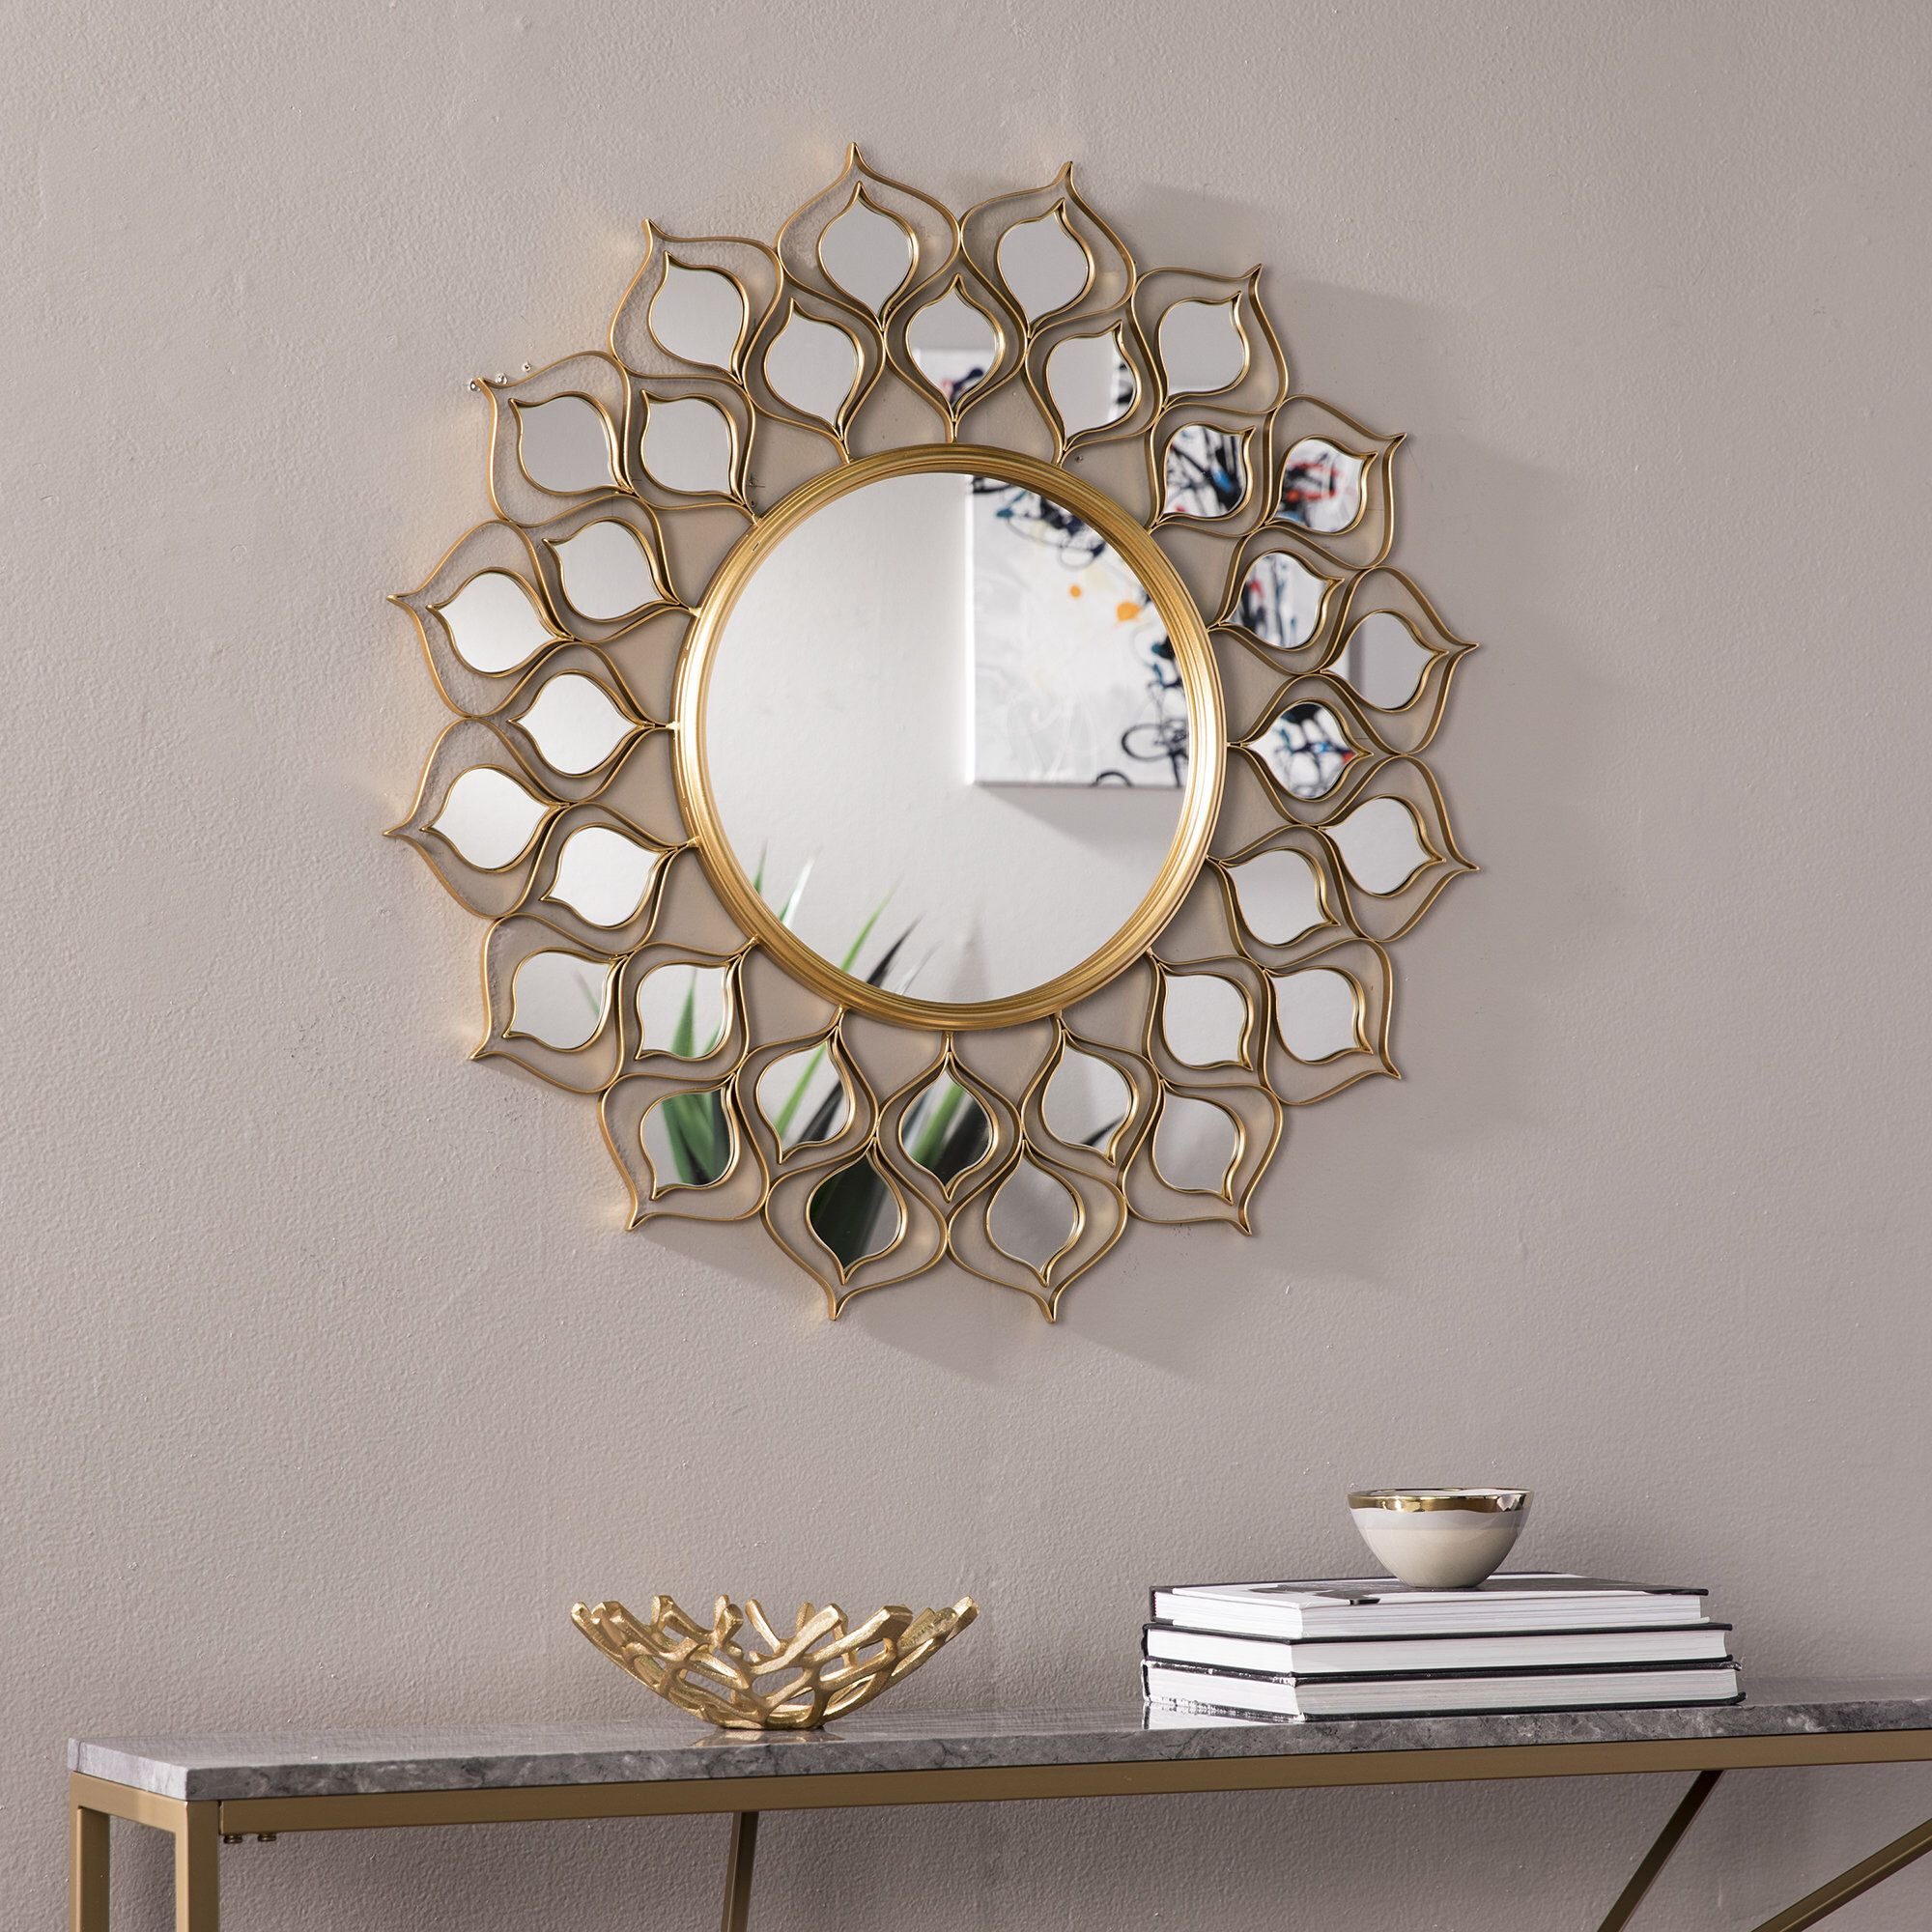 Salas Accent Mirror In 2019 | I2 B7 Teen's Islamic Bedroom Intended For Kentwood Round Wall Mirrors (View 9 of 20)